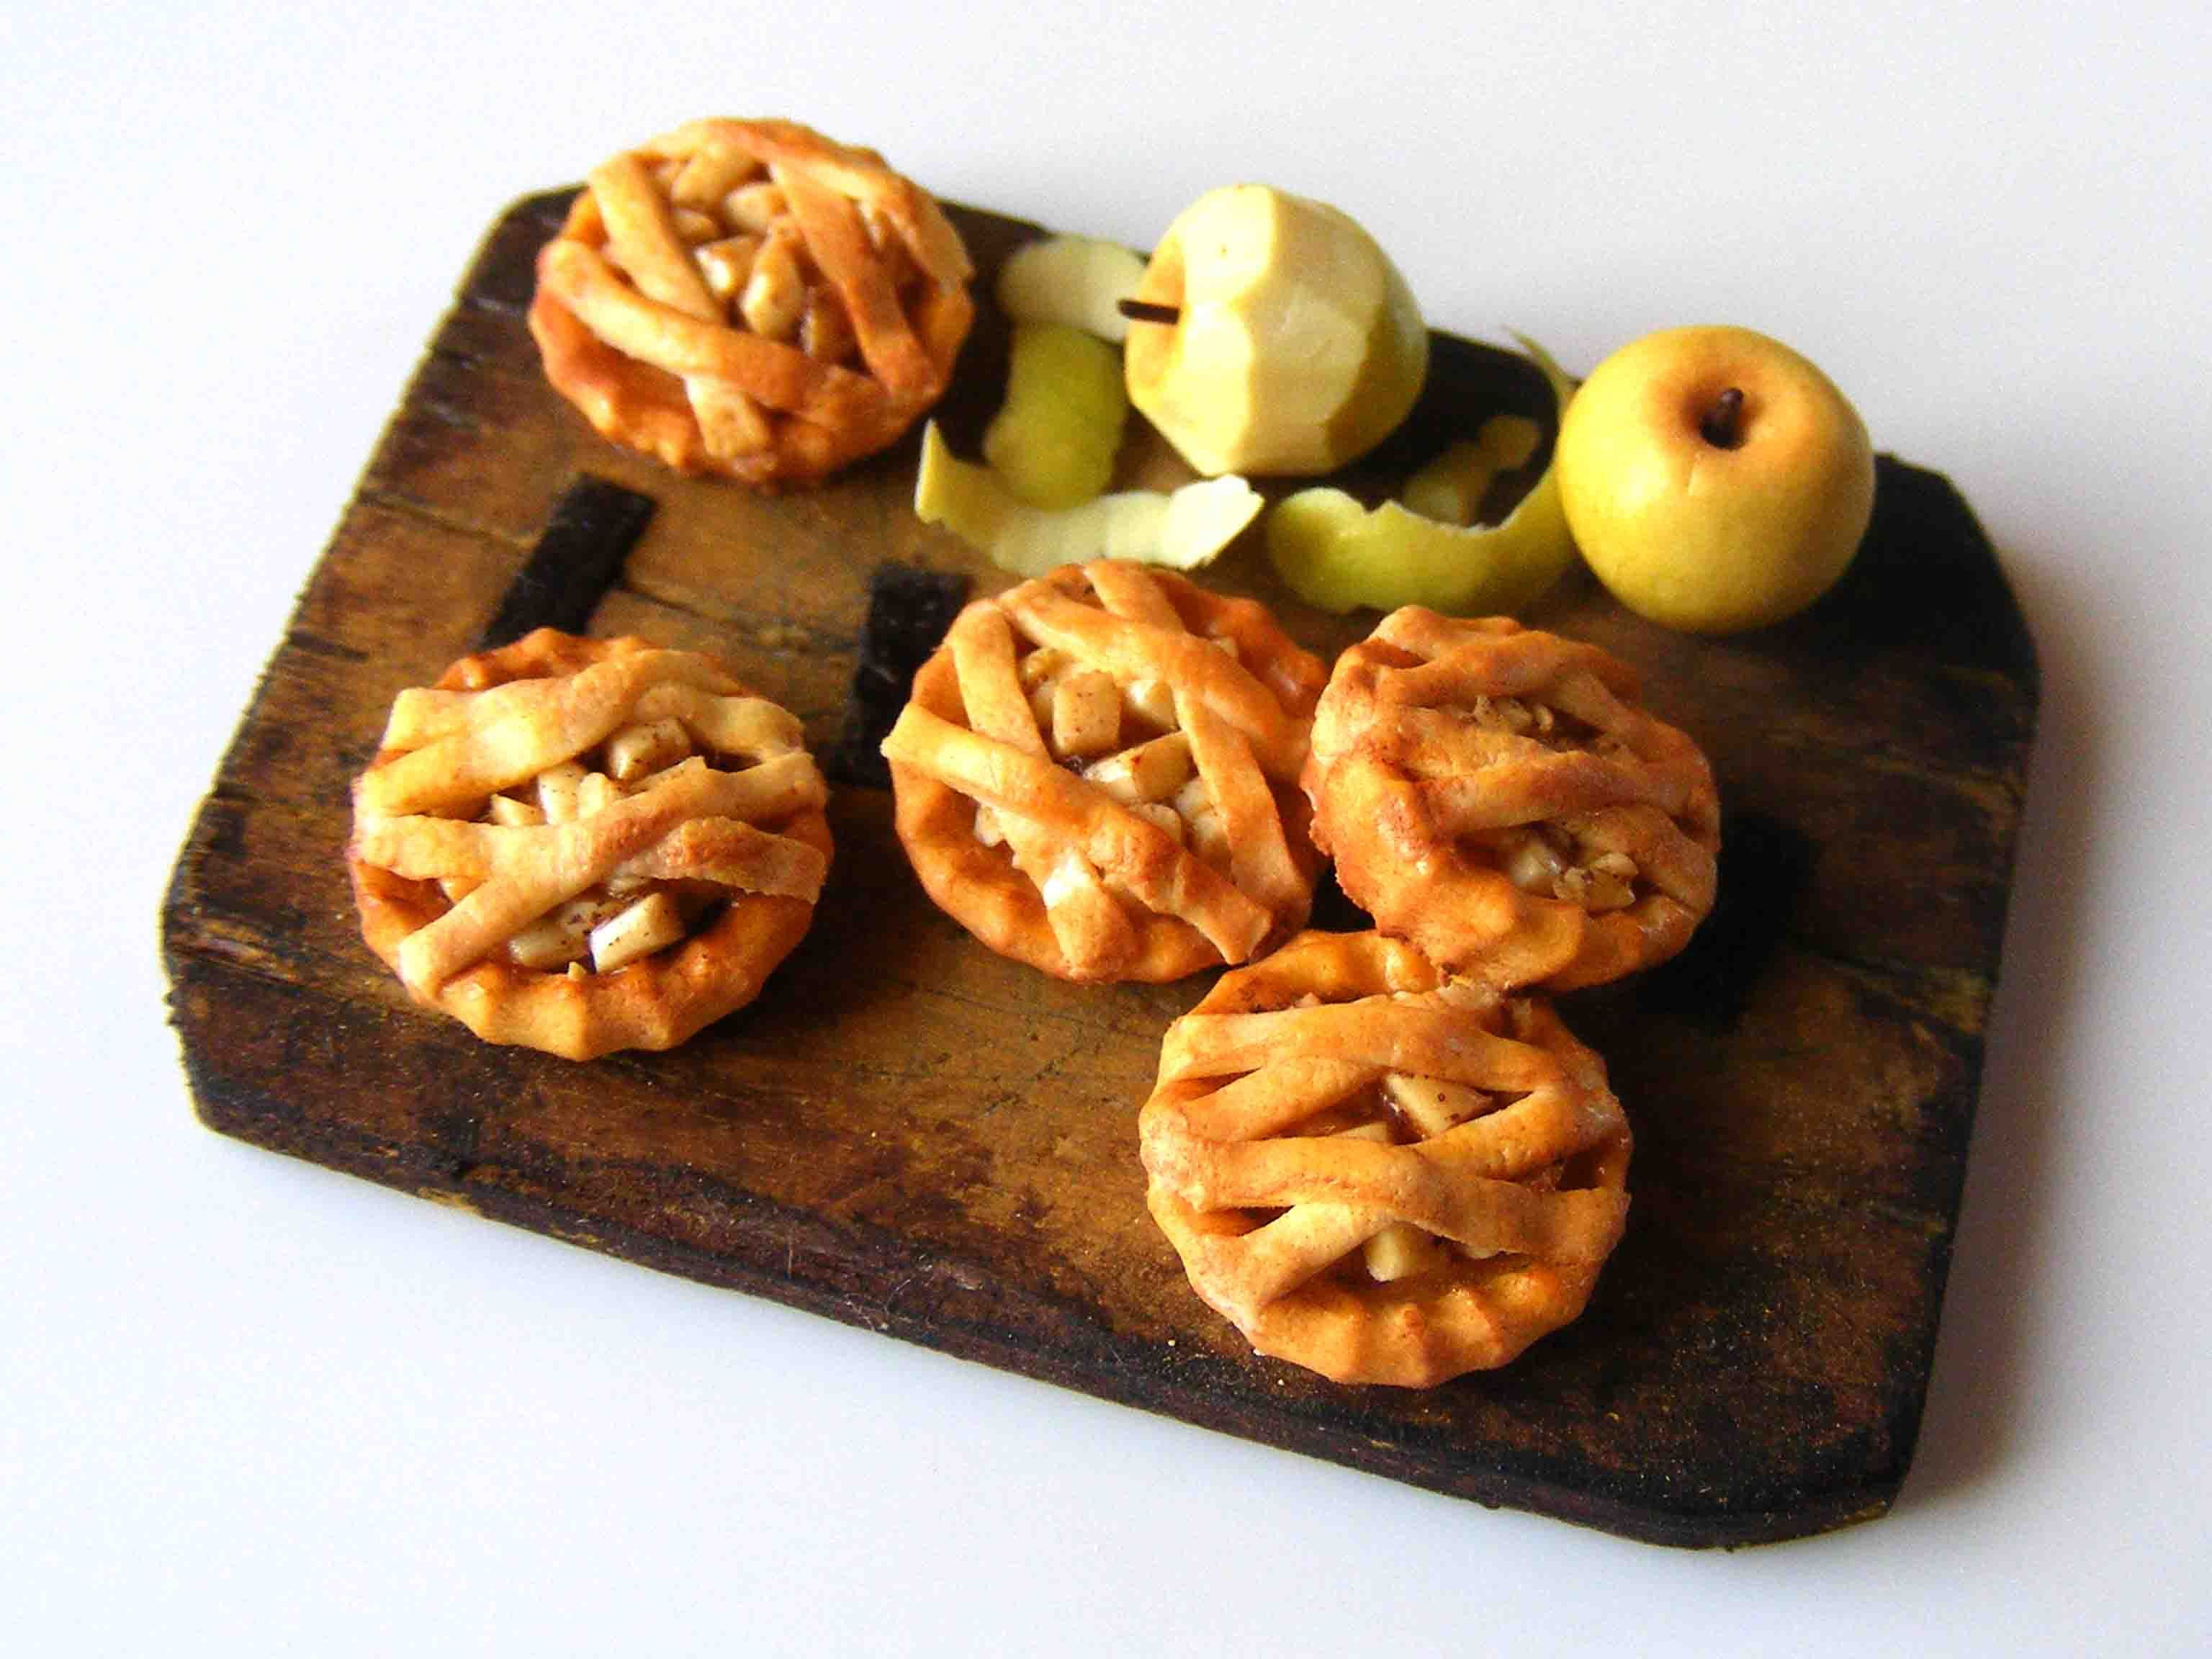 Miniature Apple Tartlets With Pealed And Whole Apple